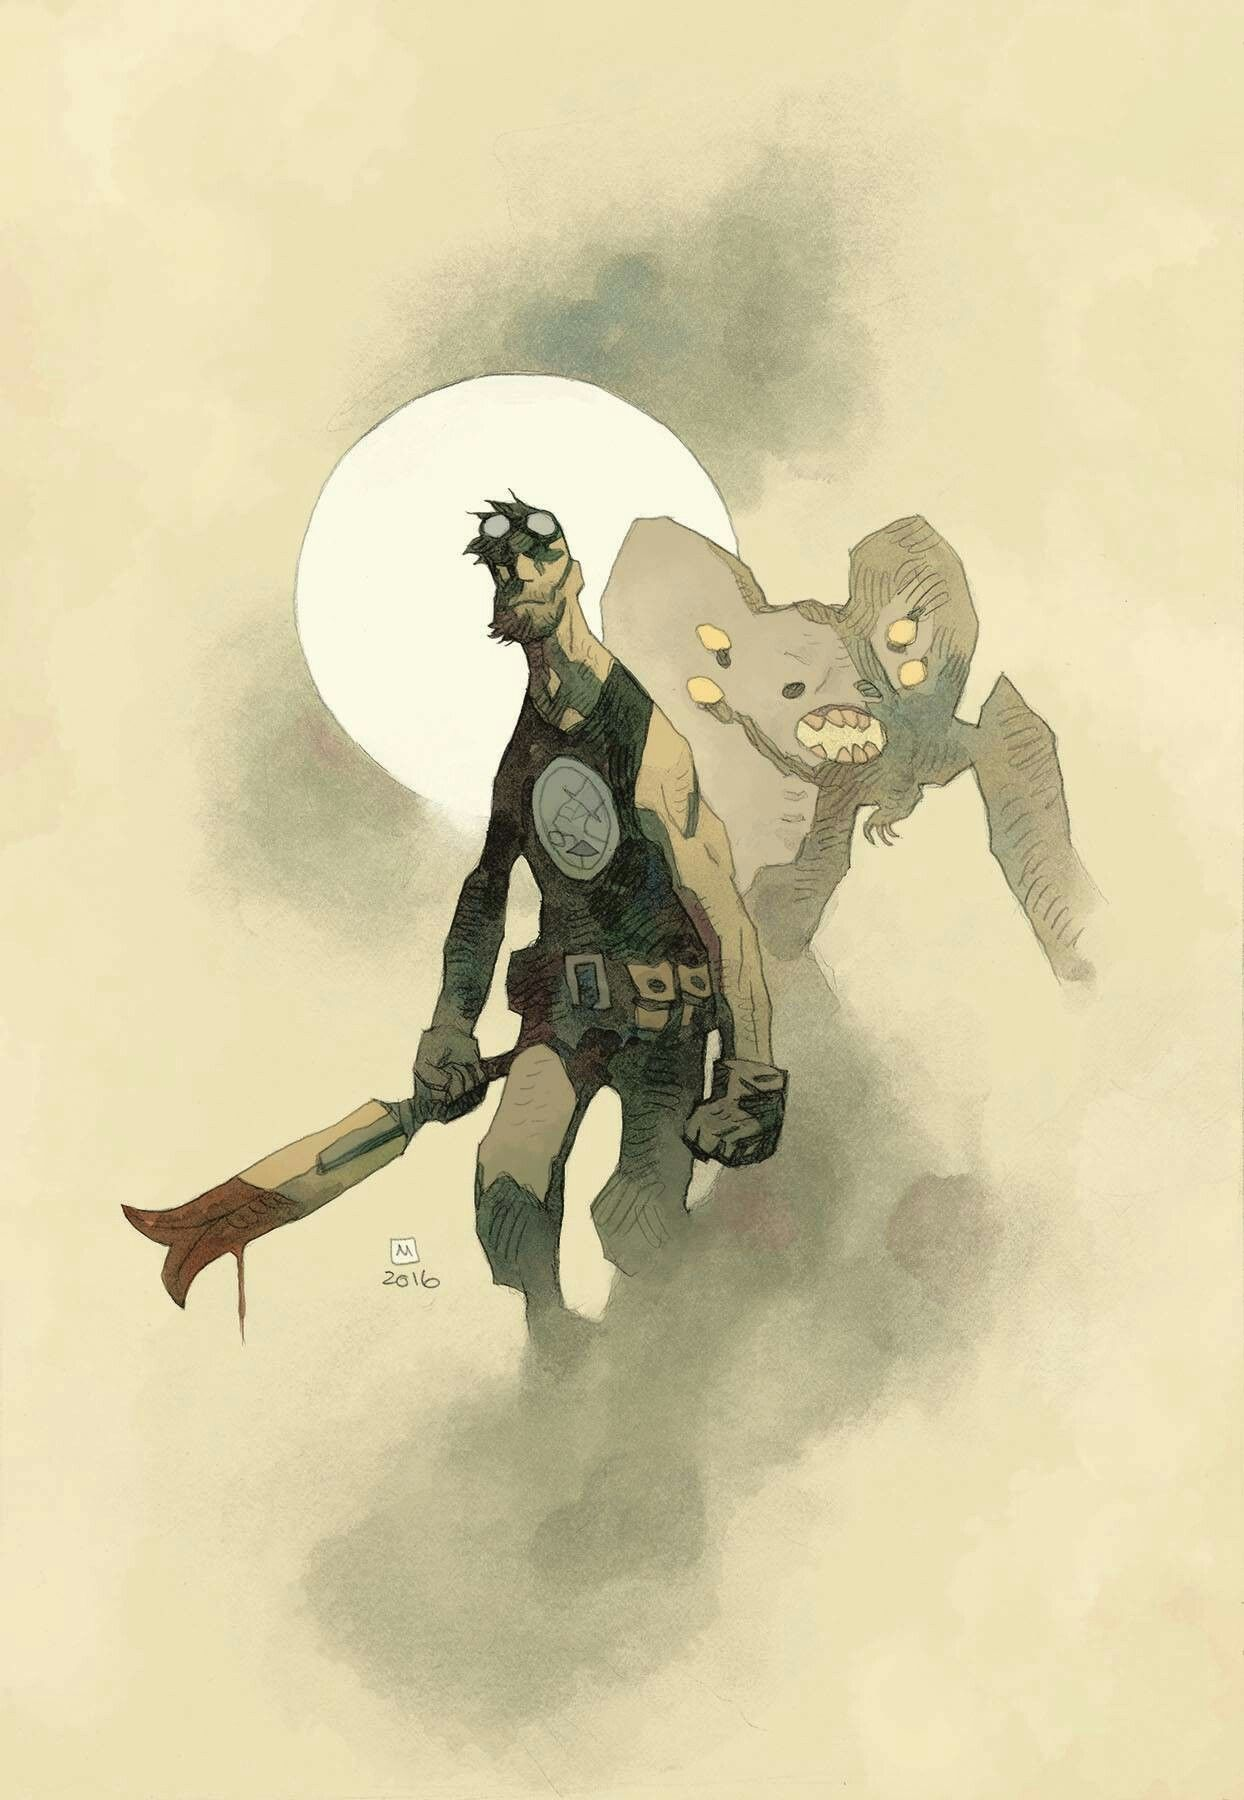 a6885e13a24aa B.P.R.D: THE DEVIL YOU KNOW #1 (MIKE MIGNOLA VARIANT COVER ...